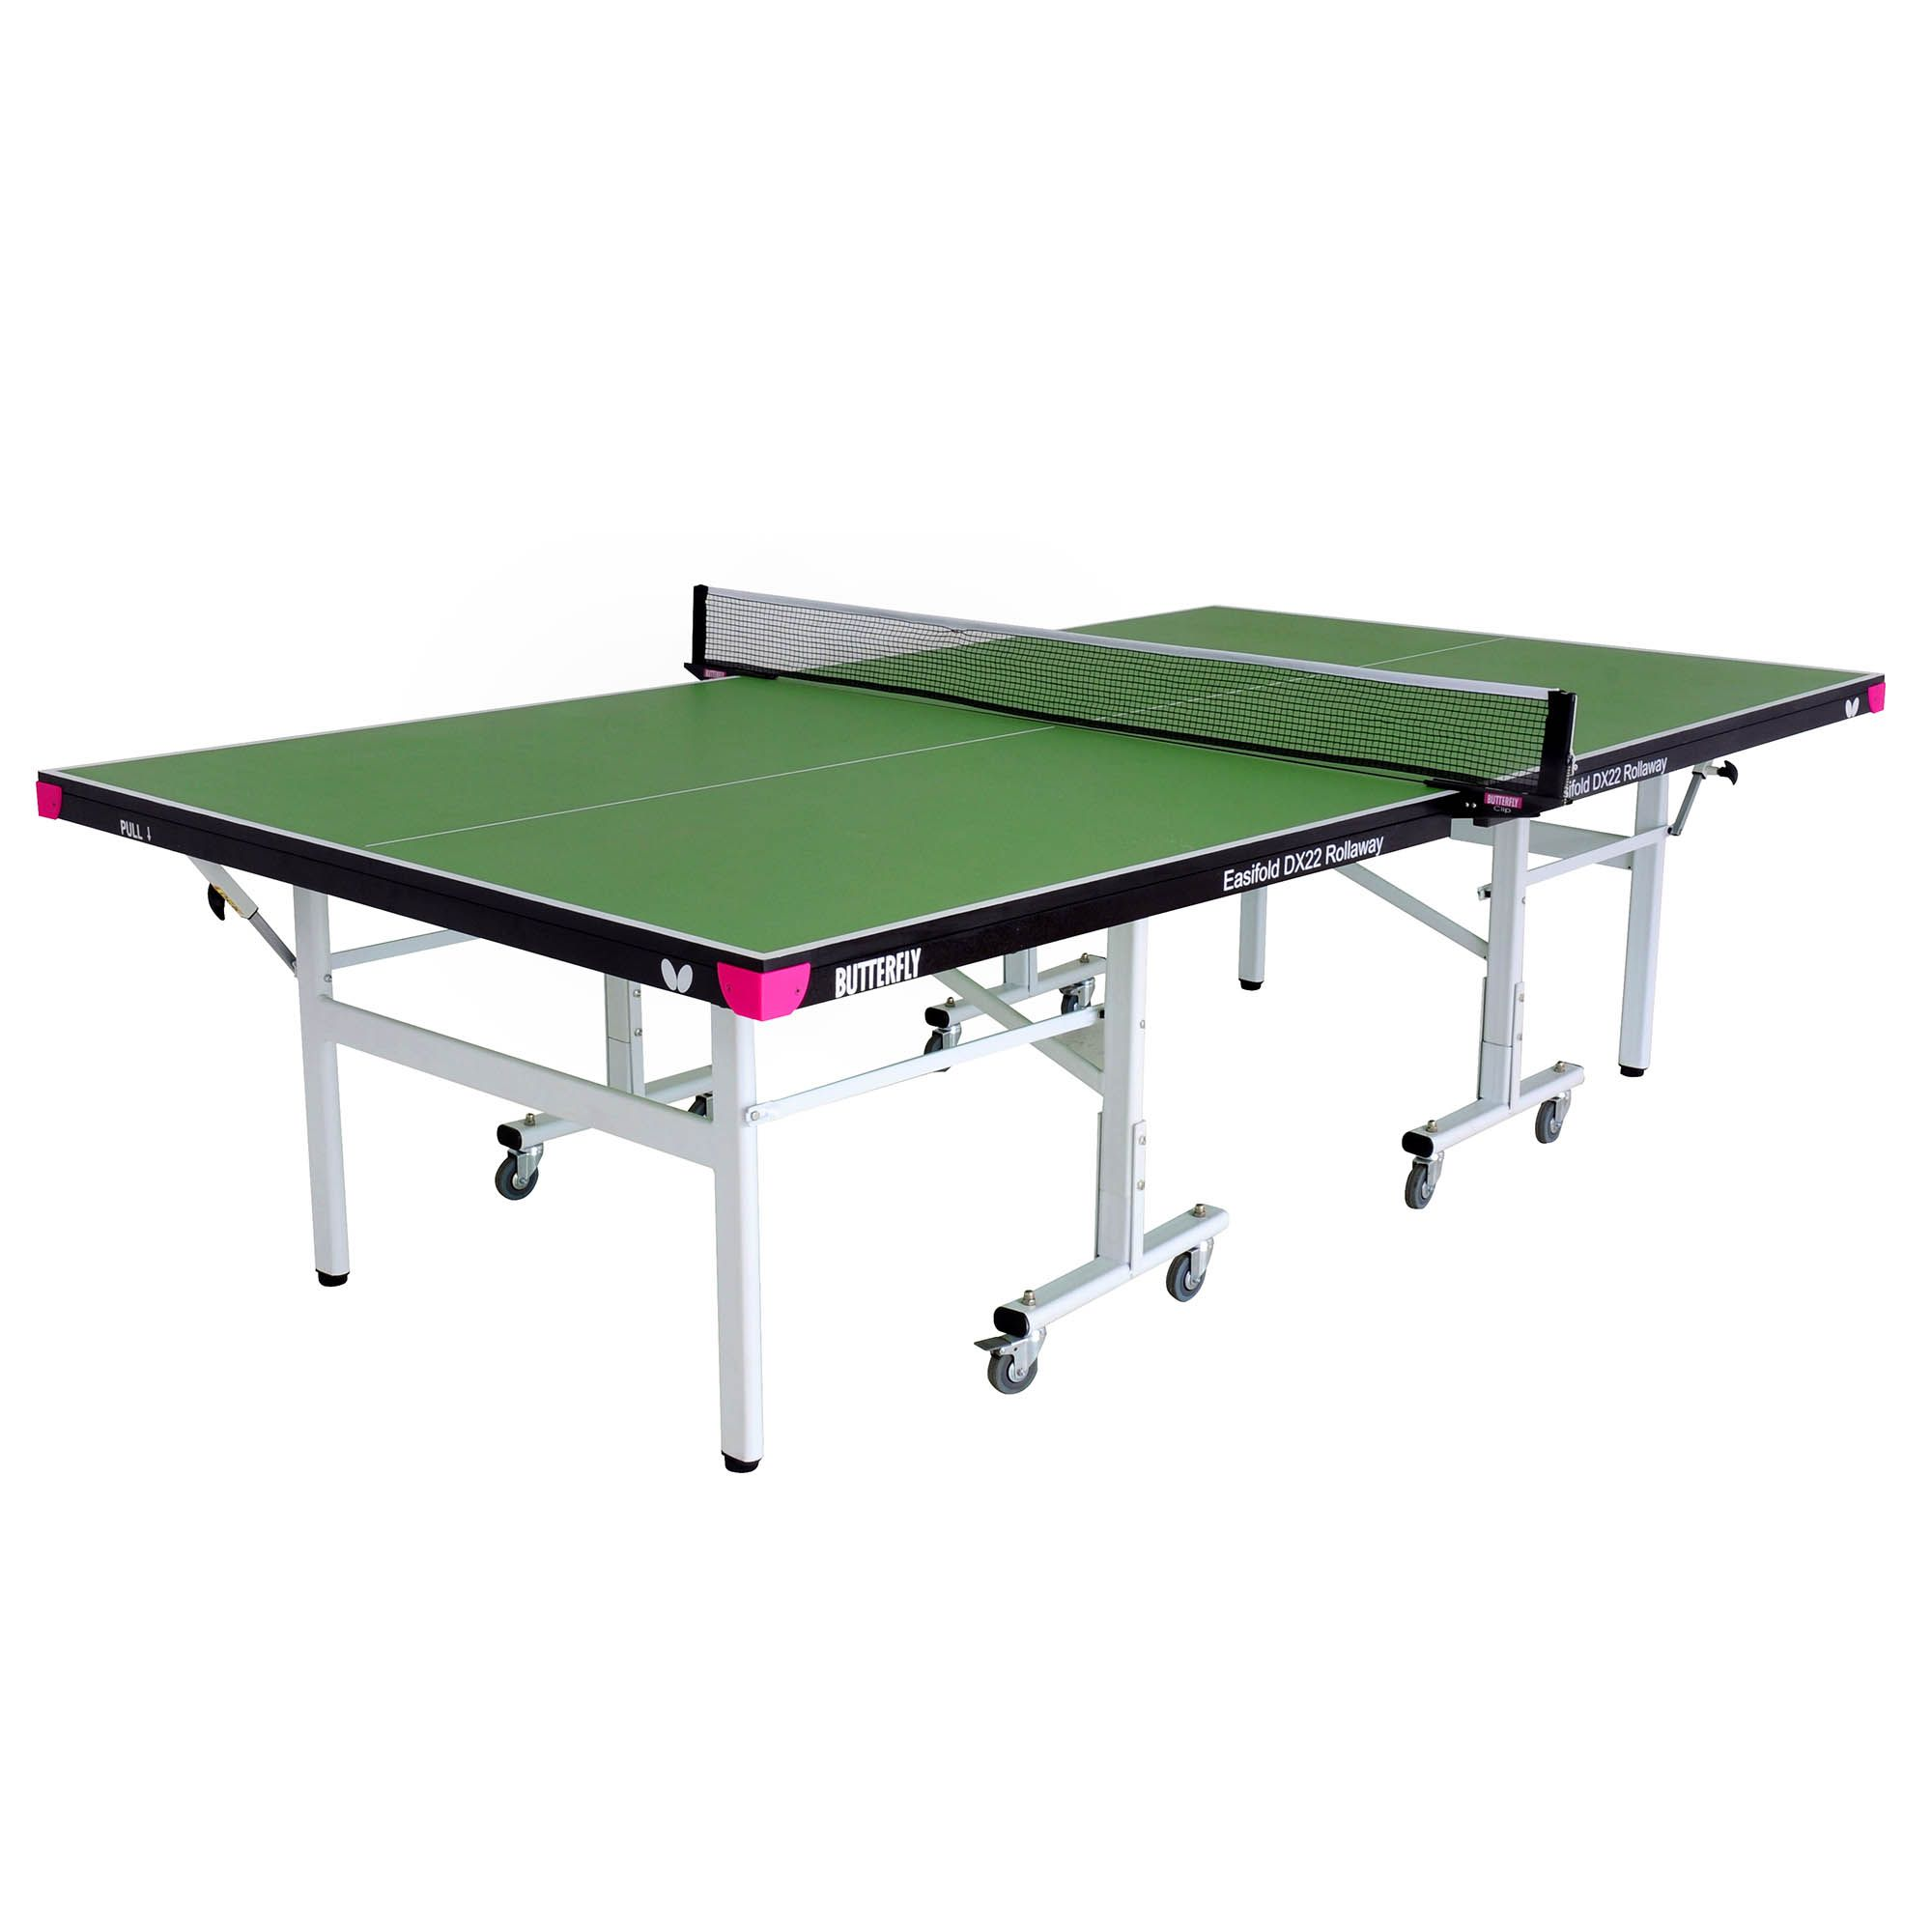 Butterfly easifold dx22 indoor rollaway table tennis table for Table tennis